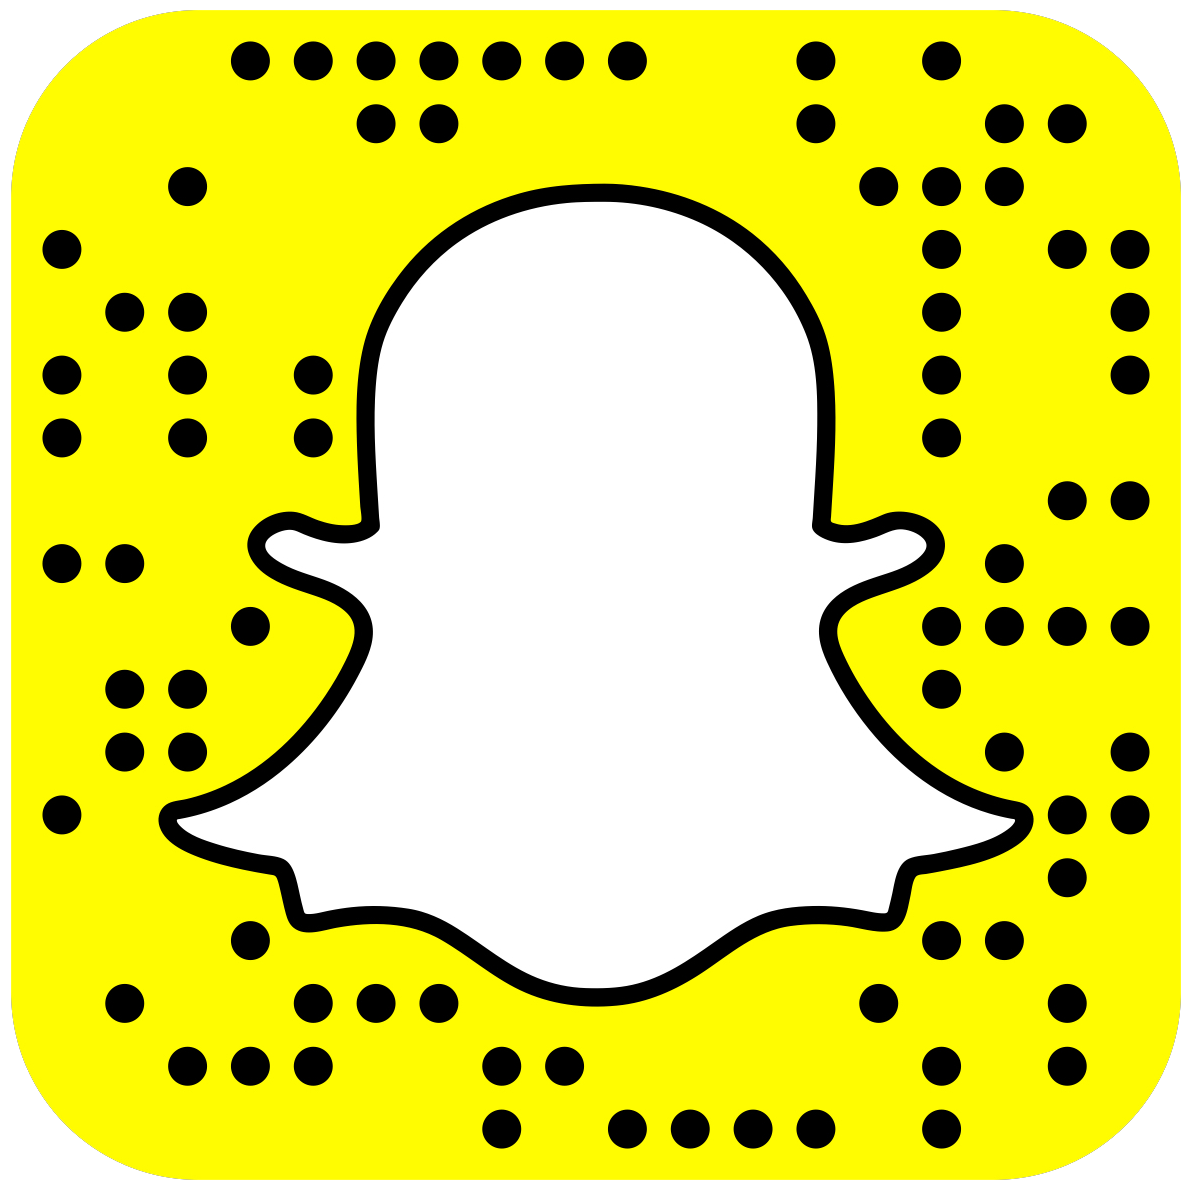 Cardale Jones Snapchat username